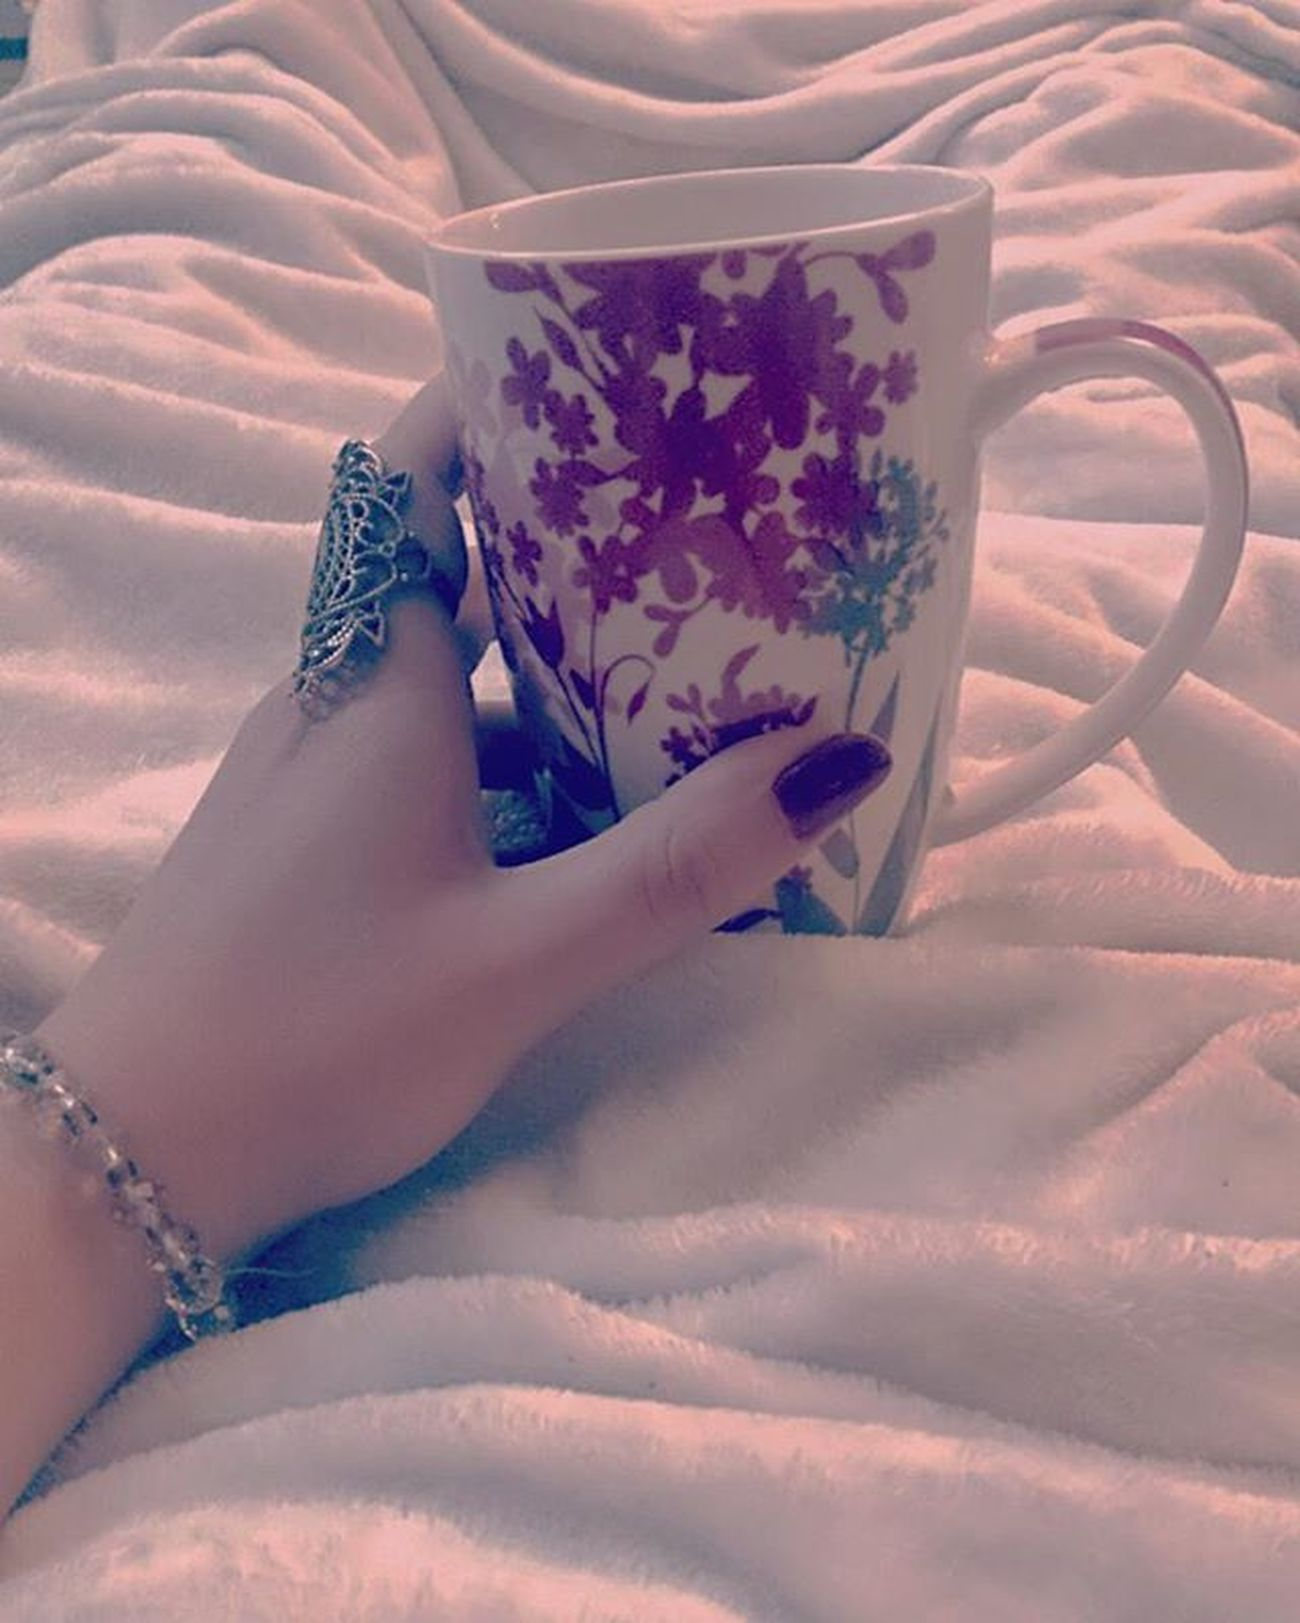 Movie✔ Hotchocolate ✔ Warmcomfyblanket✔ PrinceCharming ❌ 😬😐 👀 Coldweather InBed Movietime  Hotchoco Abudhabi Unitedarabemirates Winter Fleece